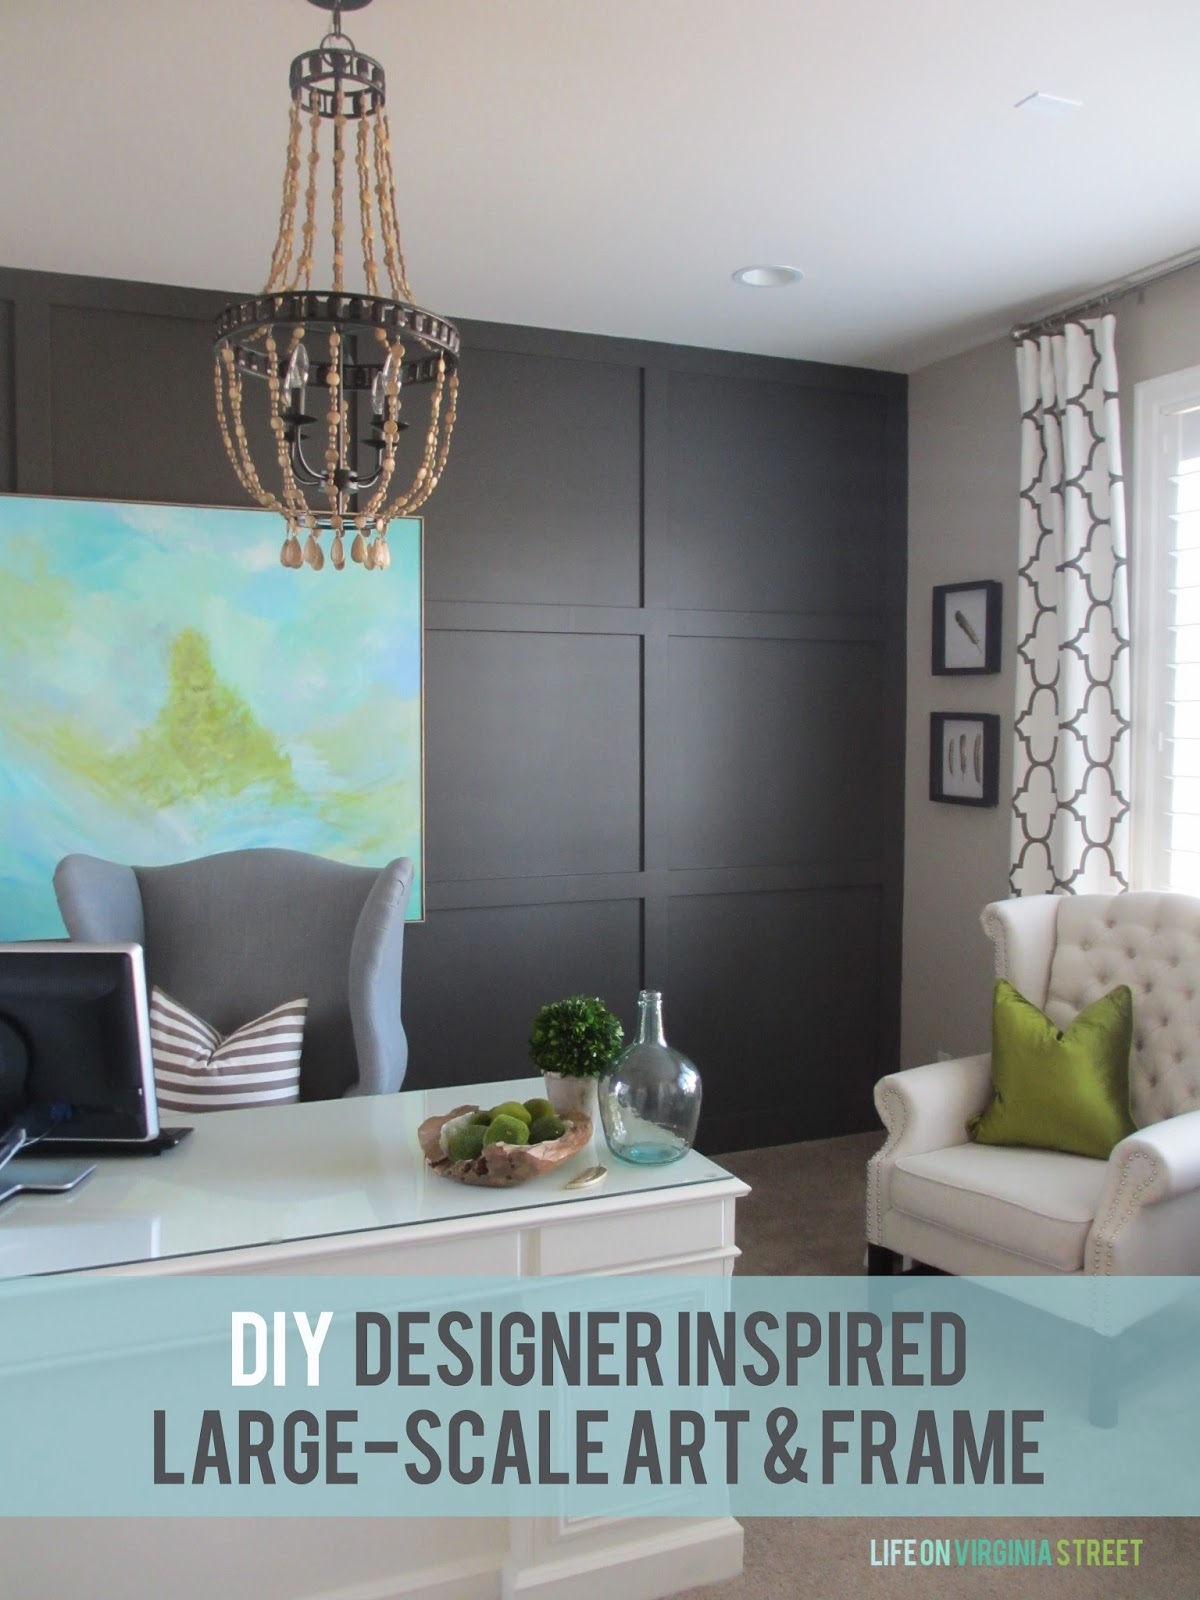 DIY Designer Inspired Large-Scale Art & Frame